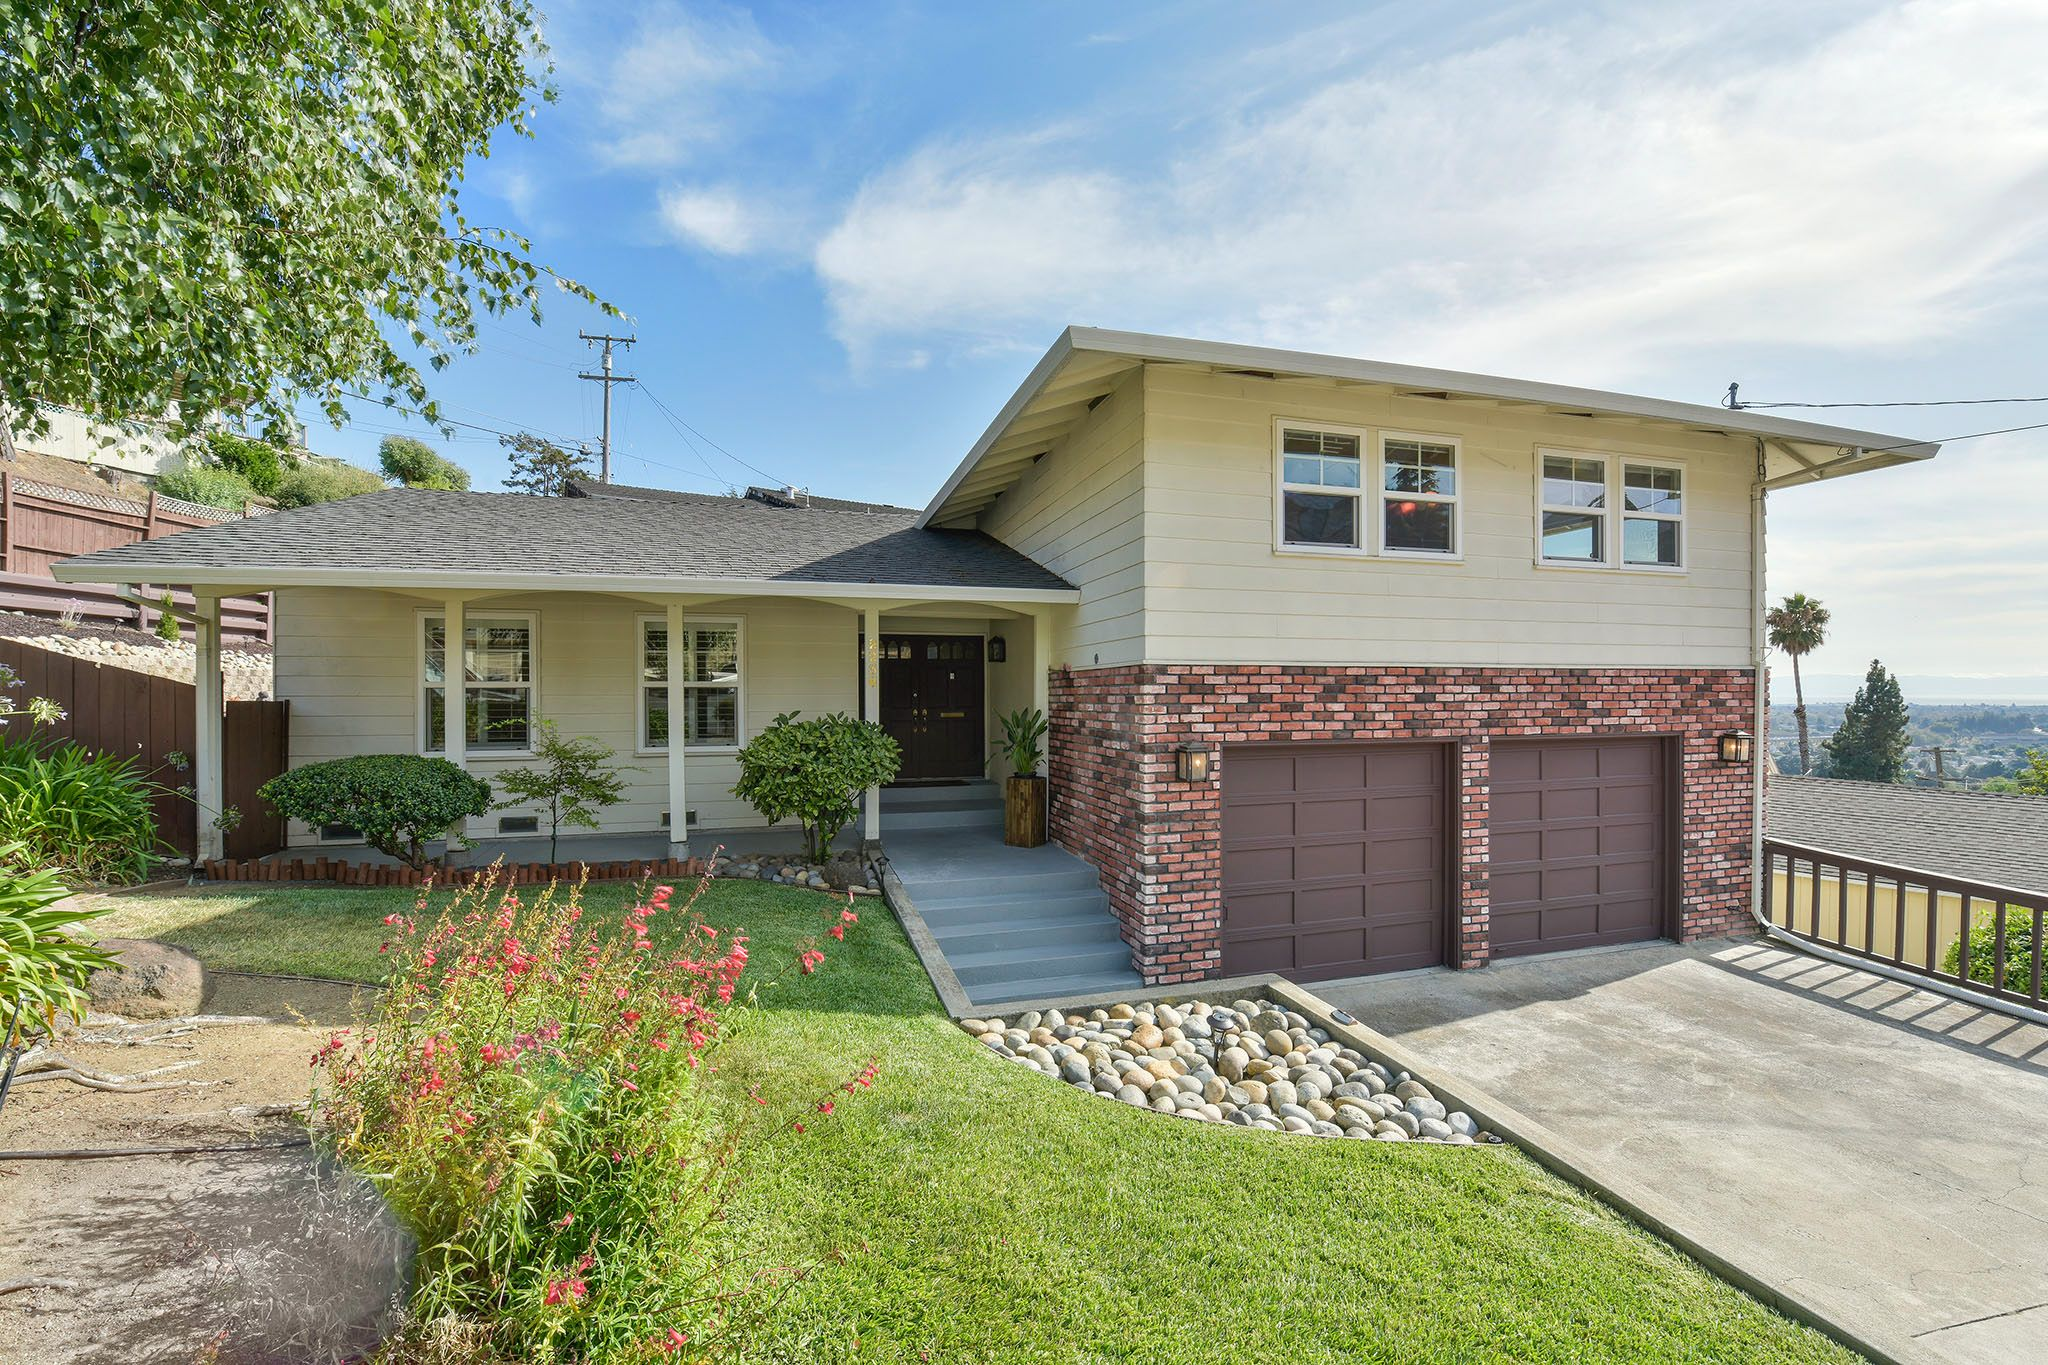 Castro Valley Home, CA Real Estate Listing